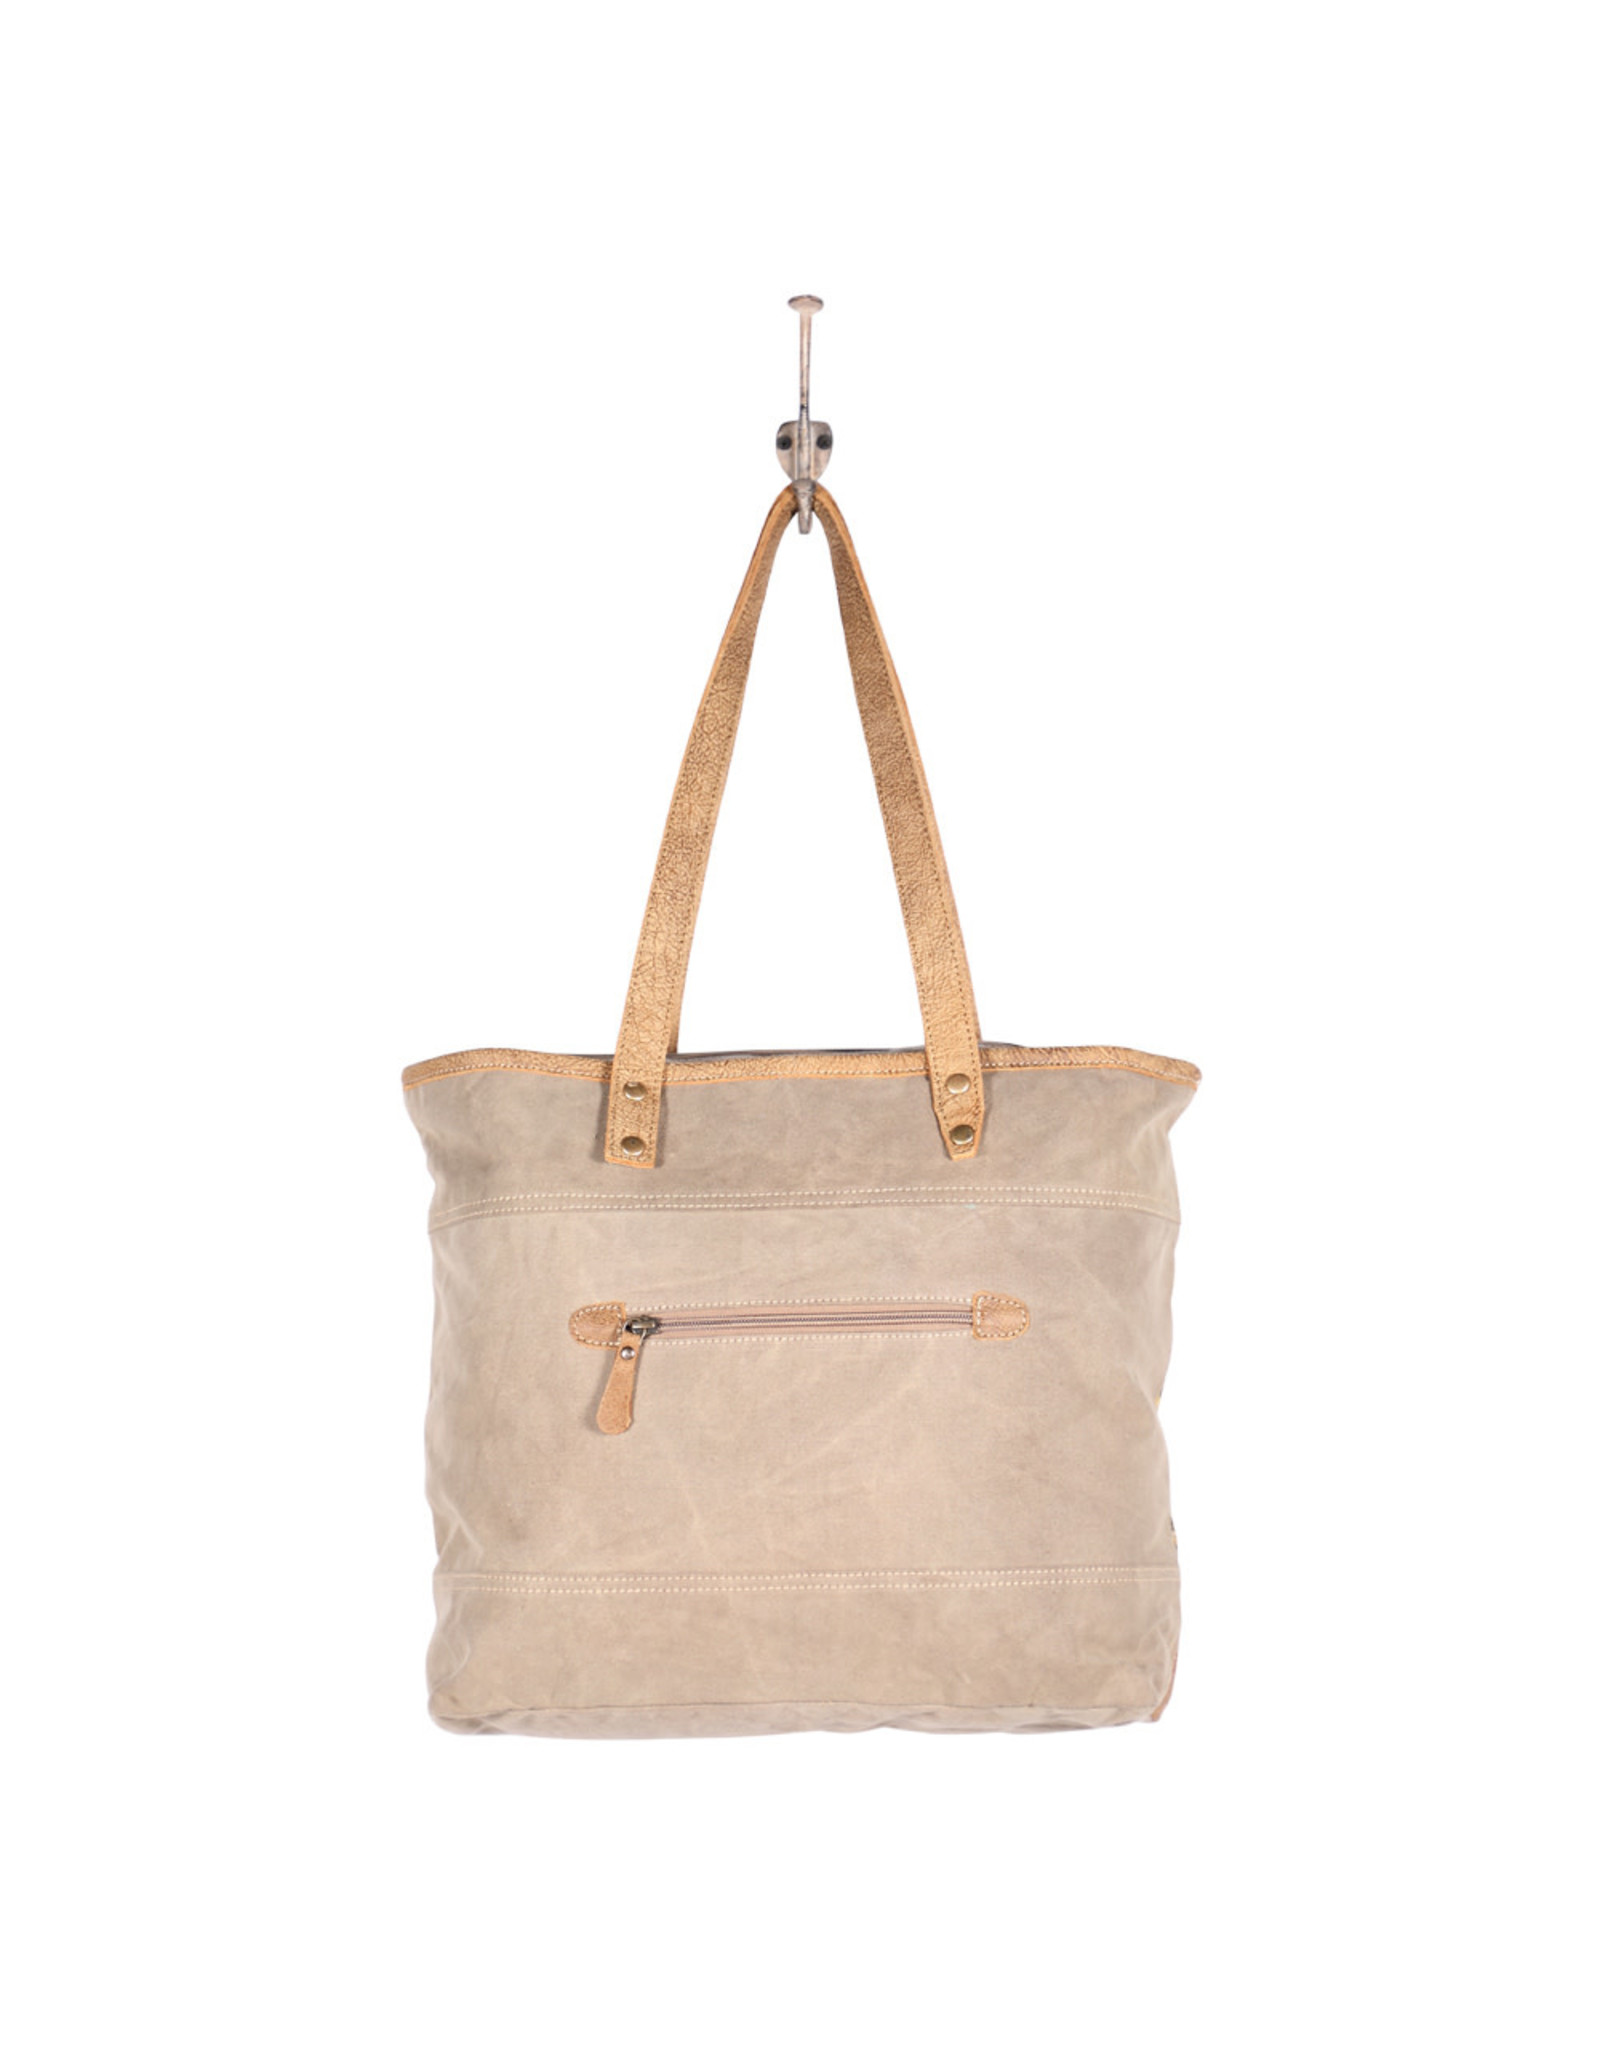 S 1886 Elite Tote Bag With an eye always attentive to style. myra bags s 1886 elite tote bag